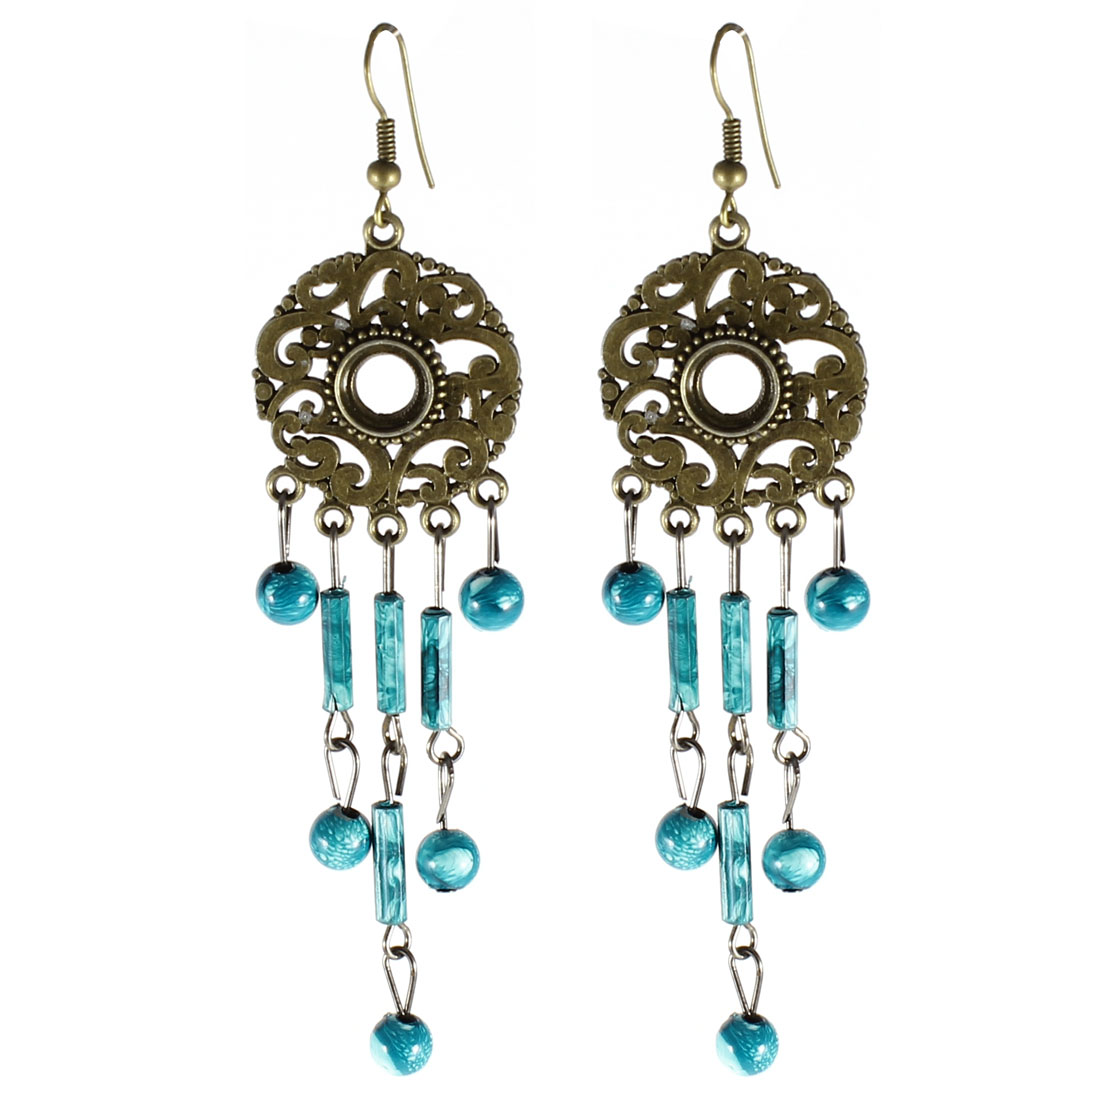 Pair Teal Beads Circle Pendant Hanging Fish Hook Eearrings Eardrop for Women